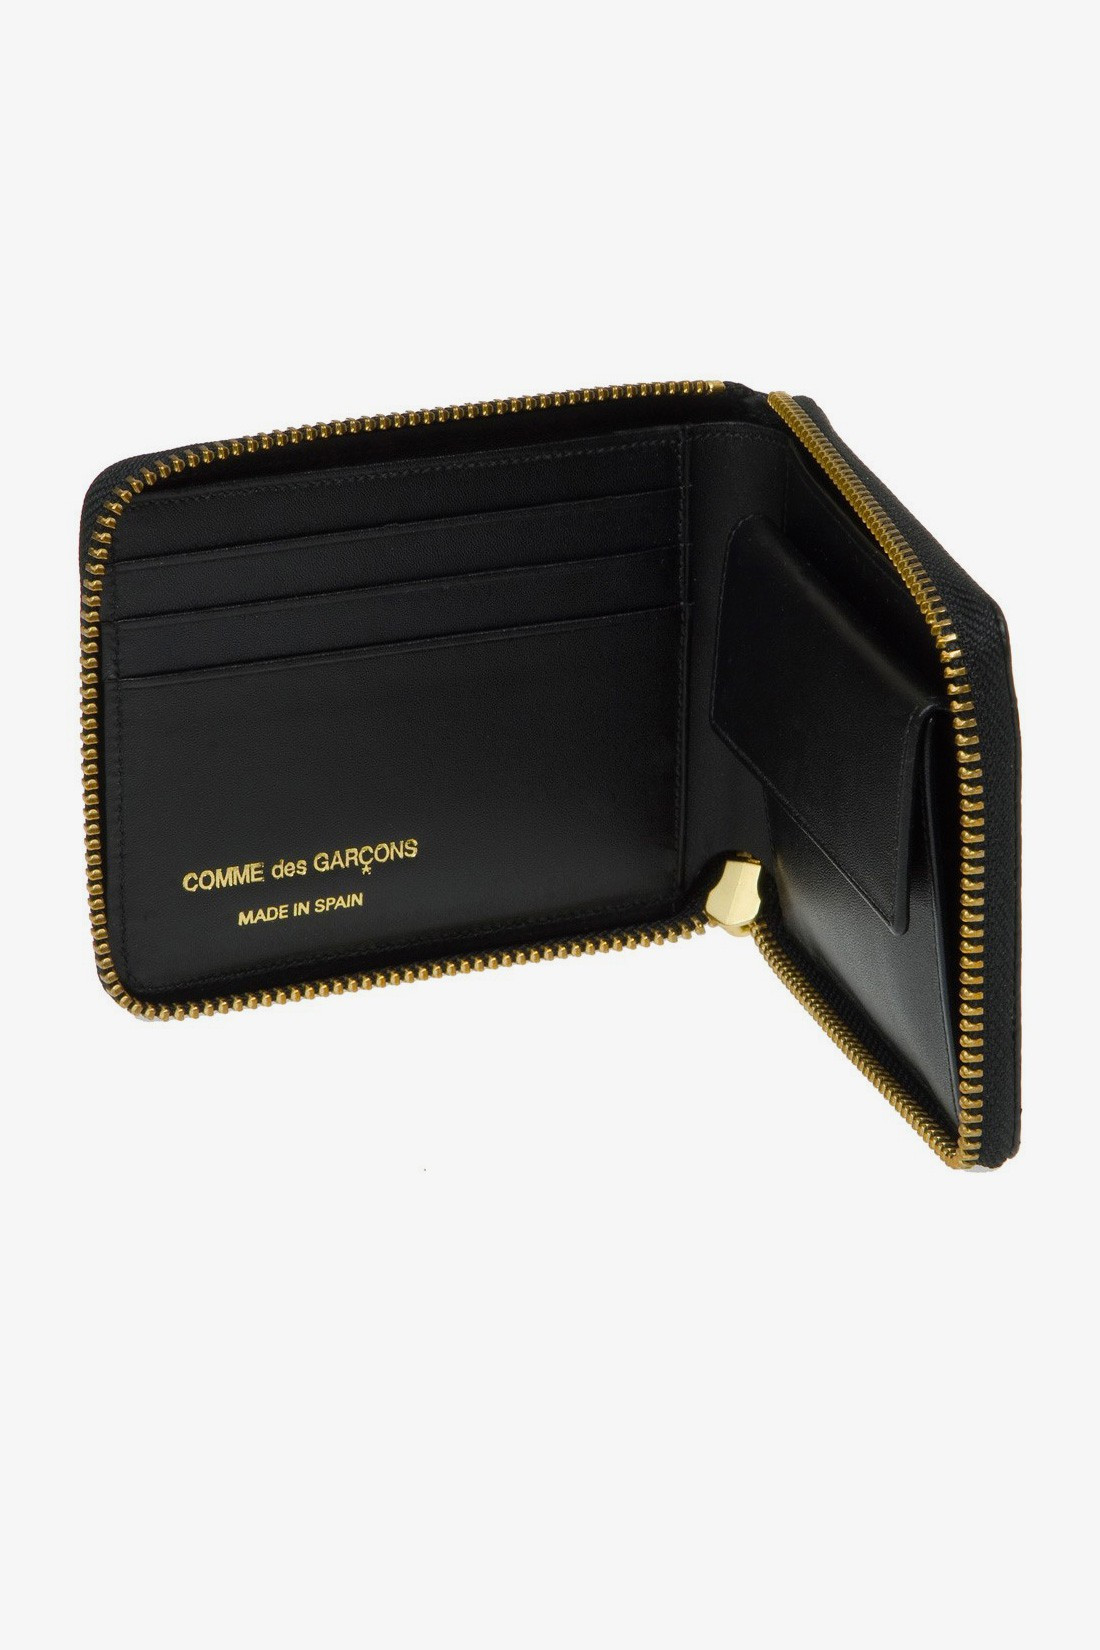 CDG WALLETS / Cdg luxury group sa7100lg Black